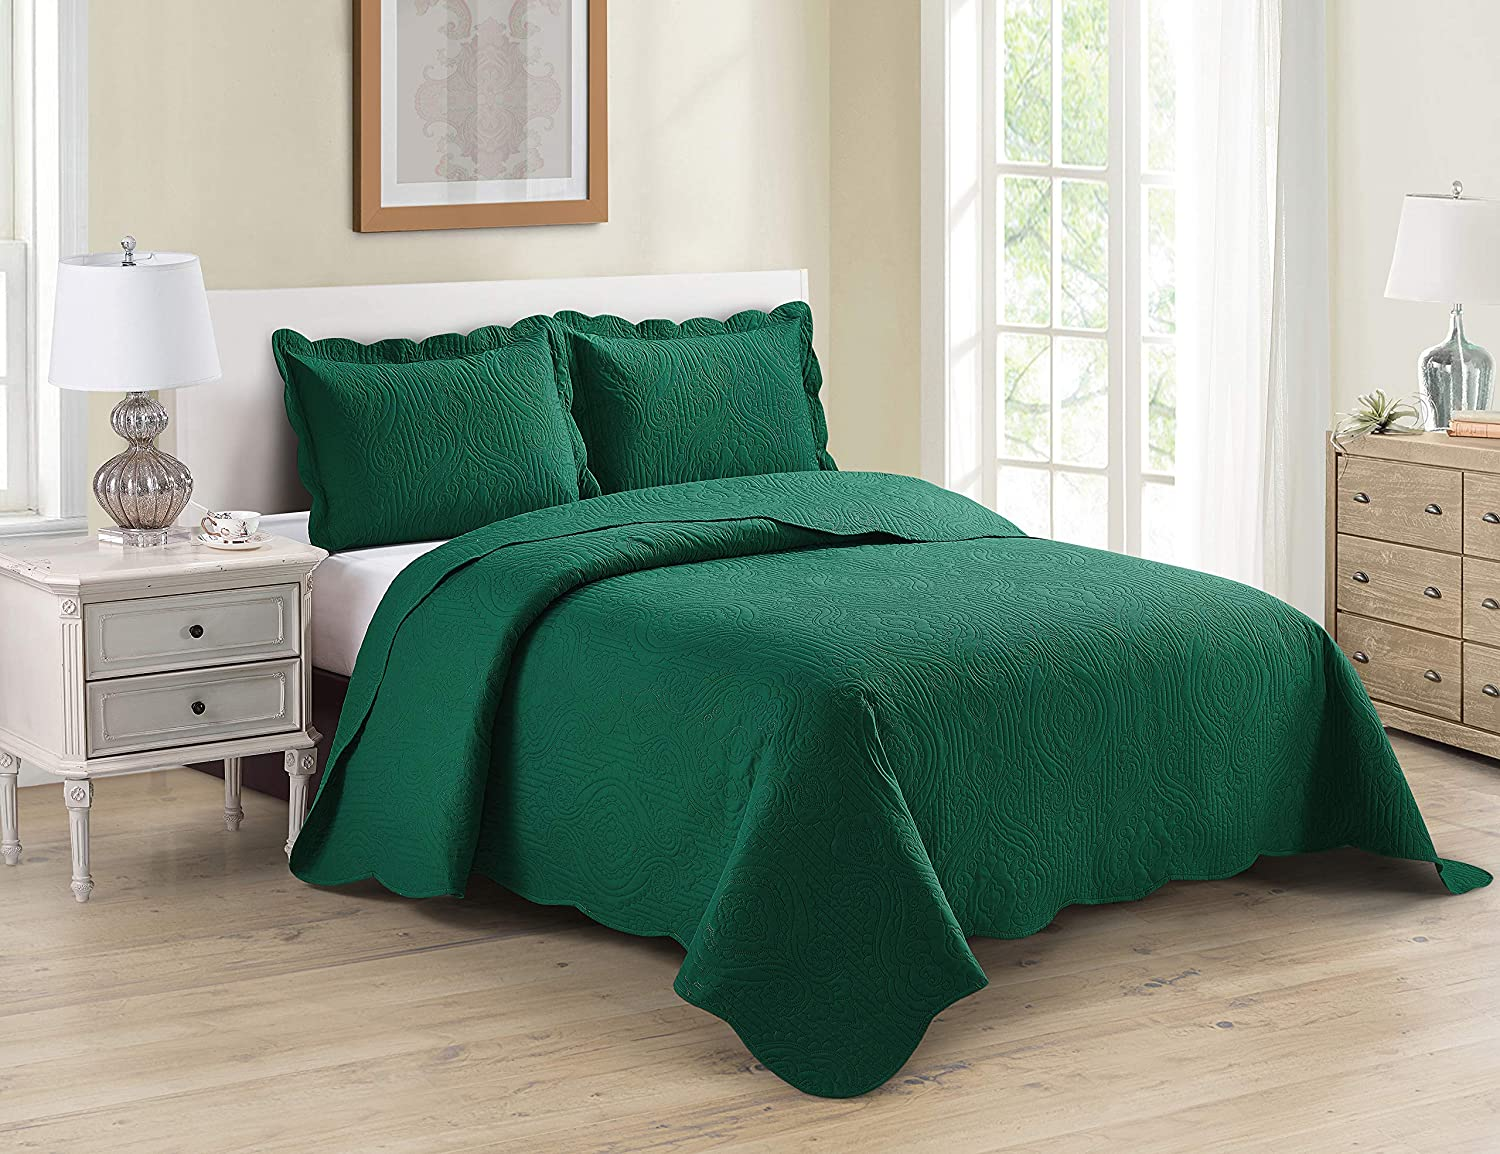 Home Collection 3pc King/Cal King Over Size Luxury Embossed Bedspread Set Light Weight Solid Hunter Green New